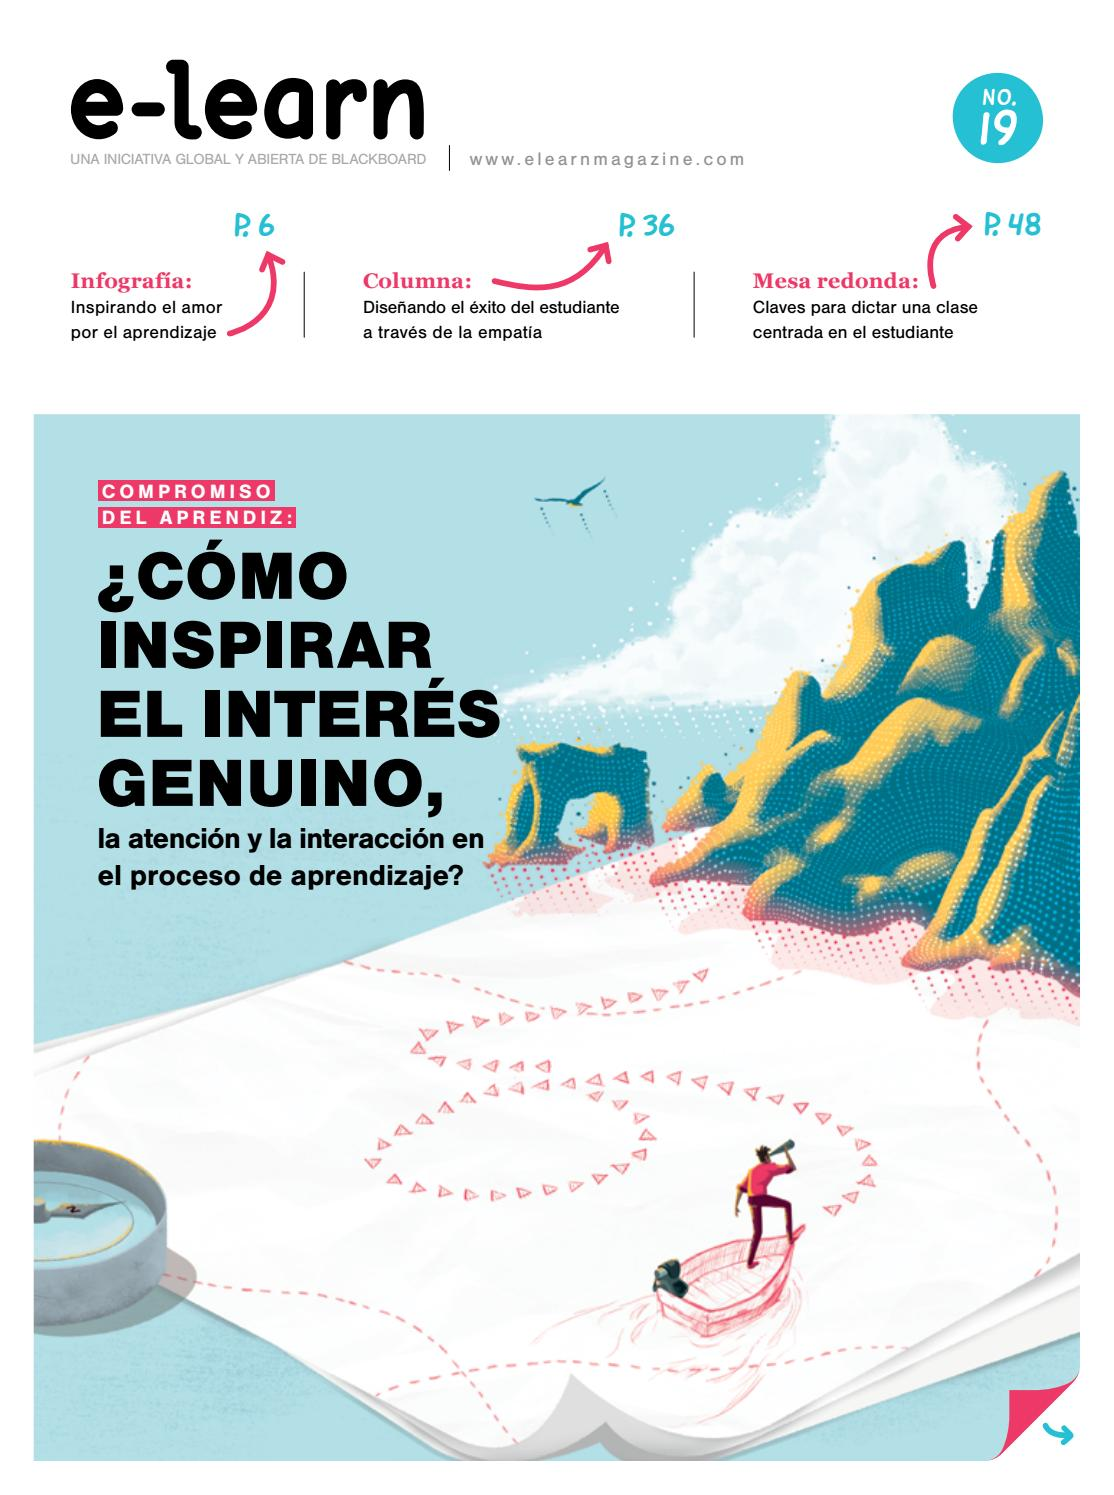 E-Learn 19: Compromiso del Aprendiz by E-Learn - issuu